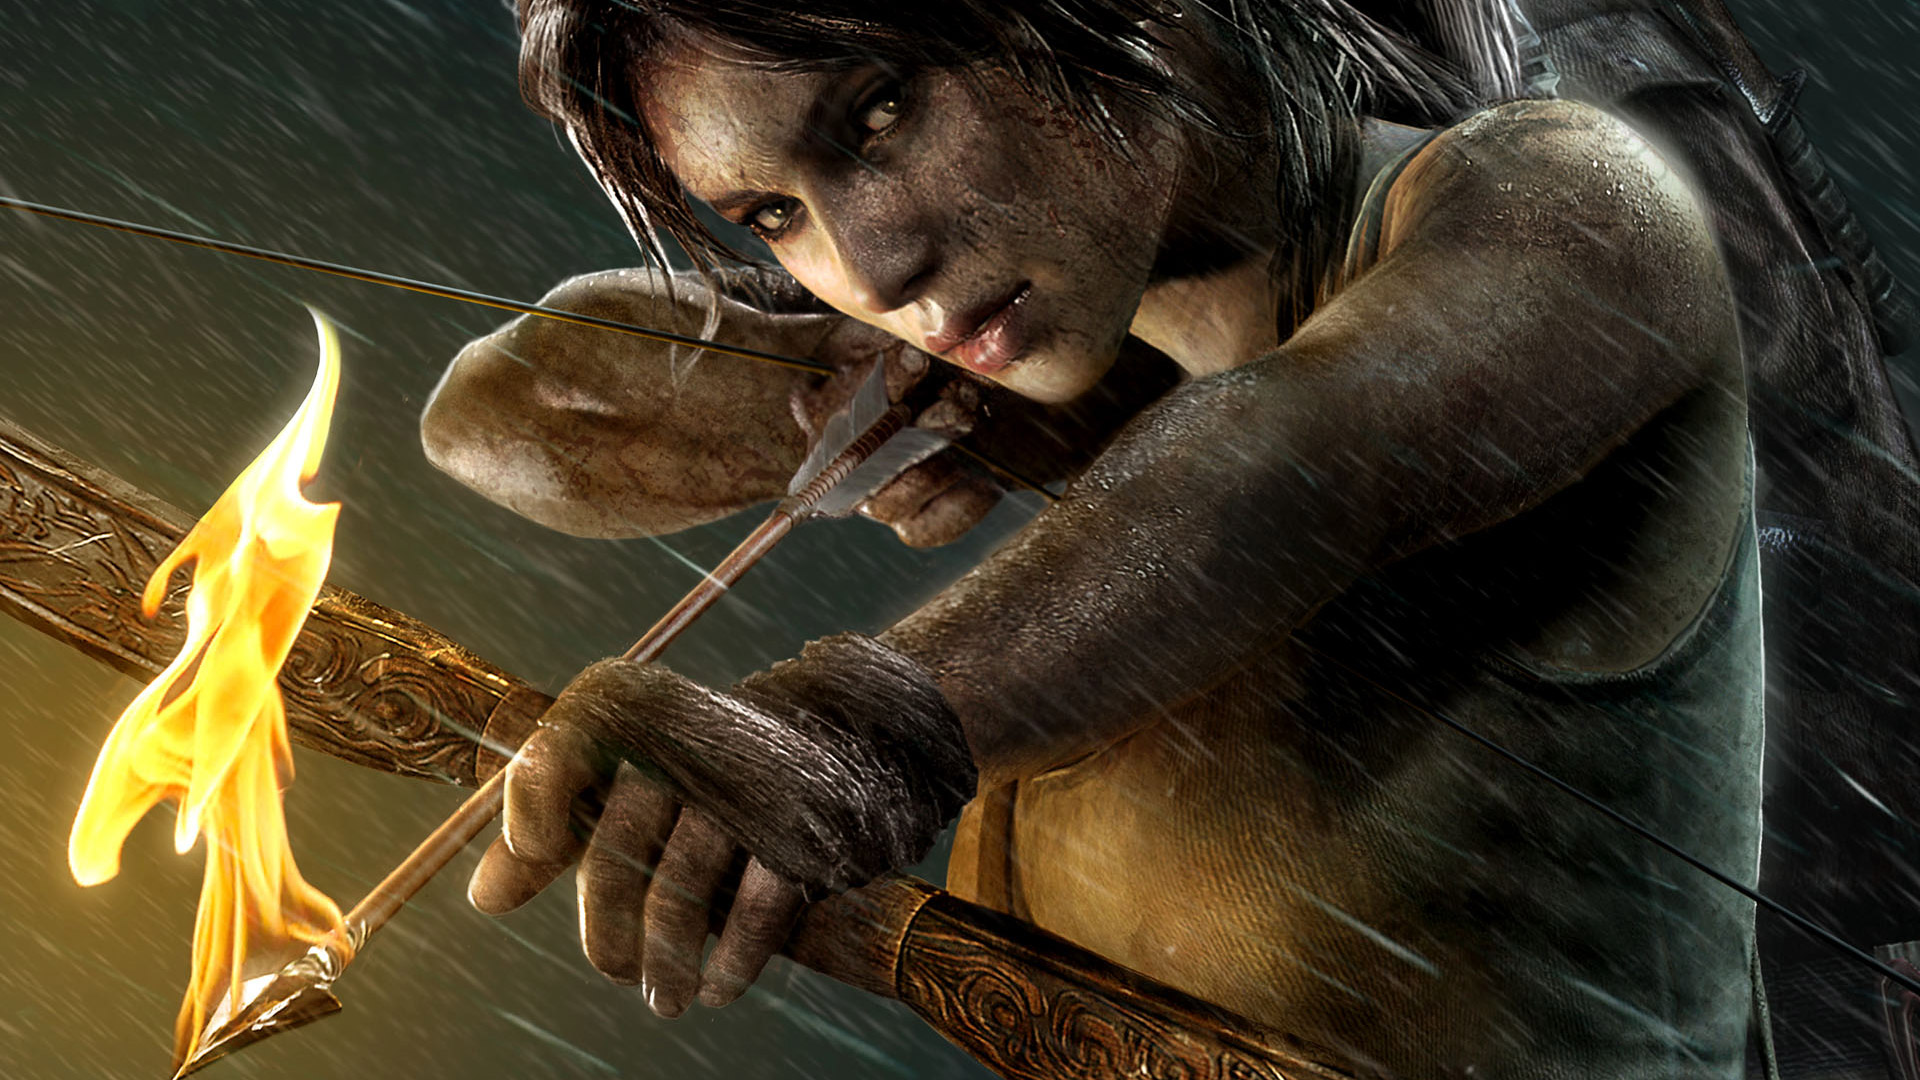 Tomb Raider 2015 Wallpaper 1920x1080 Tomb Raider 2015 Pictures to like 1920x1080